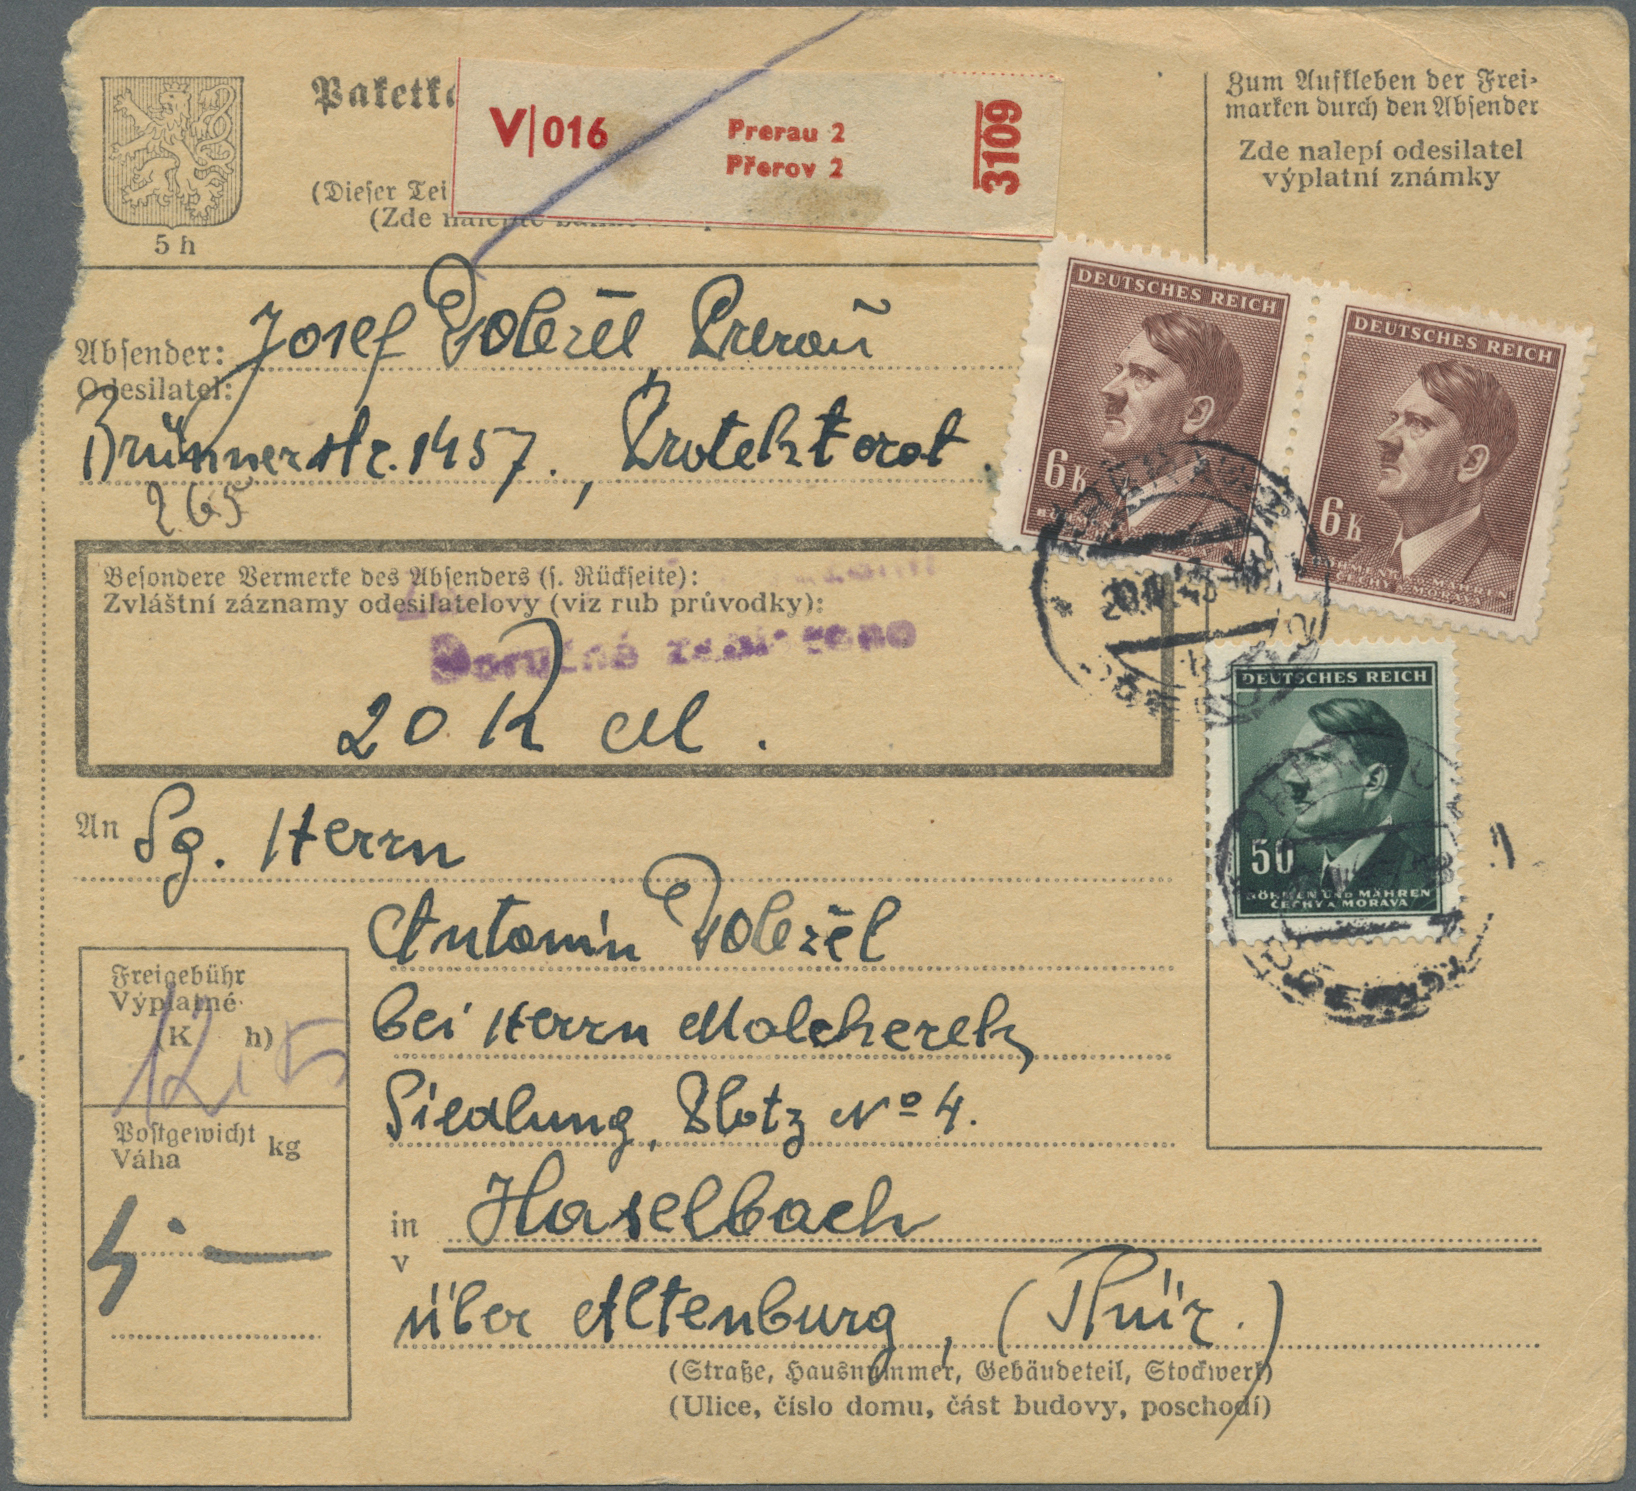 Lot 37641 - kriegsgefangenen-lagerpost  -  Auktionshaus Christoph Gärtner GmbH & Co. KG Collections Germany,  Collections Supplement, Surprise boxes #39 Day 7